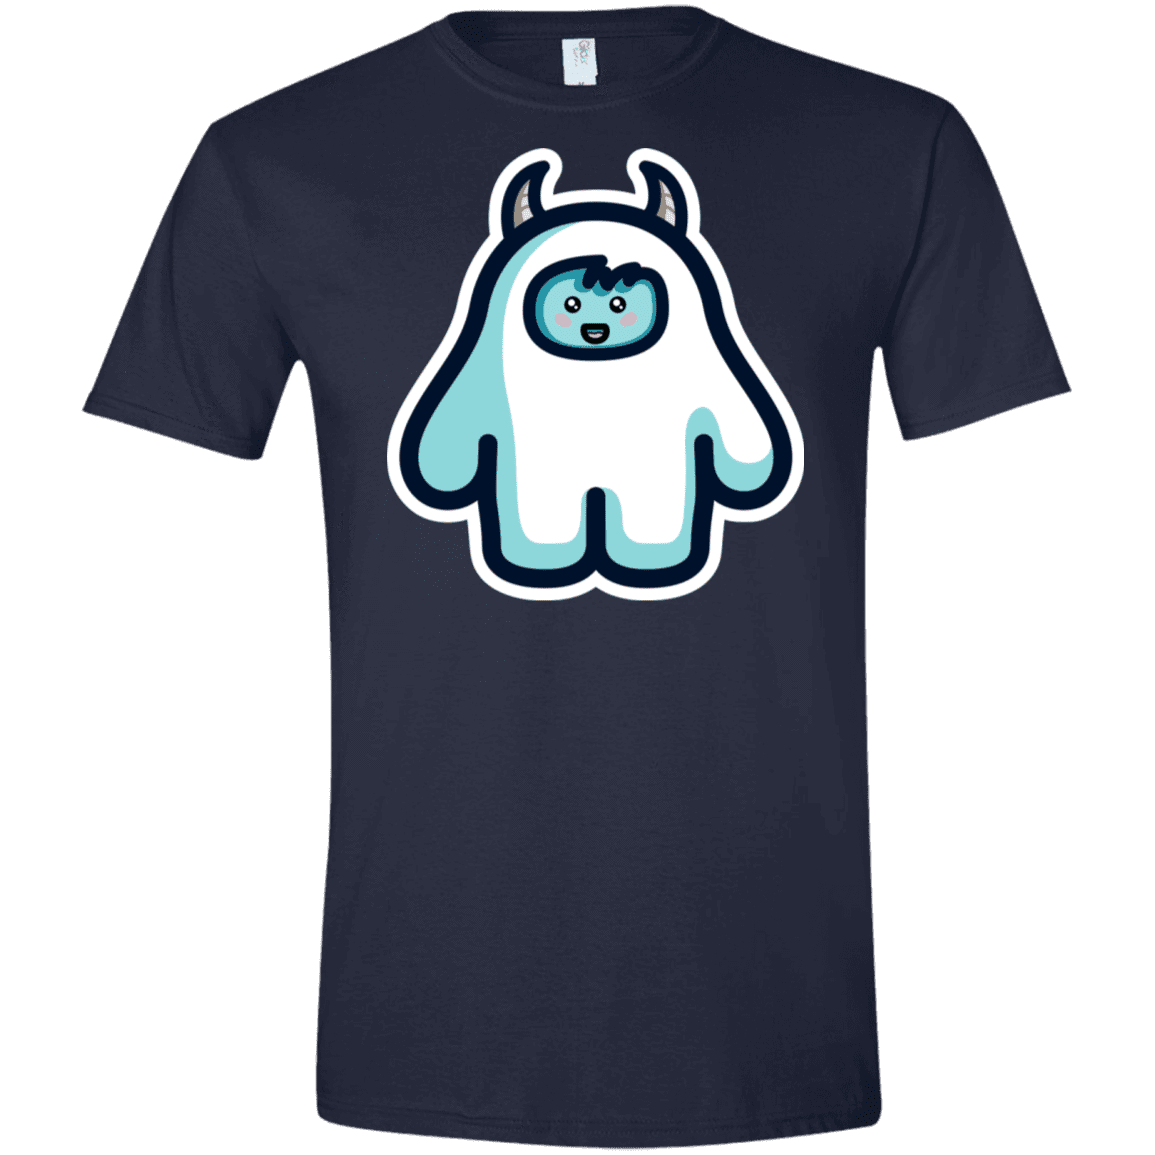 T-Shirts Navy / X-Small Kawaii Cute Yeti Men's Semi-Fitted Softstyle